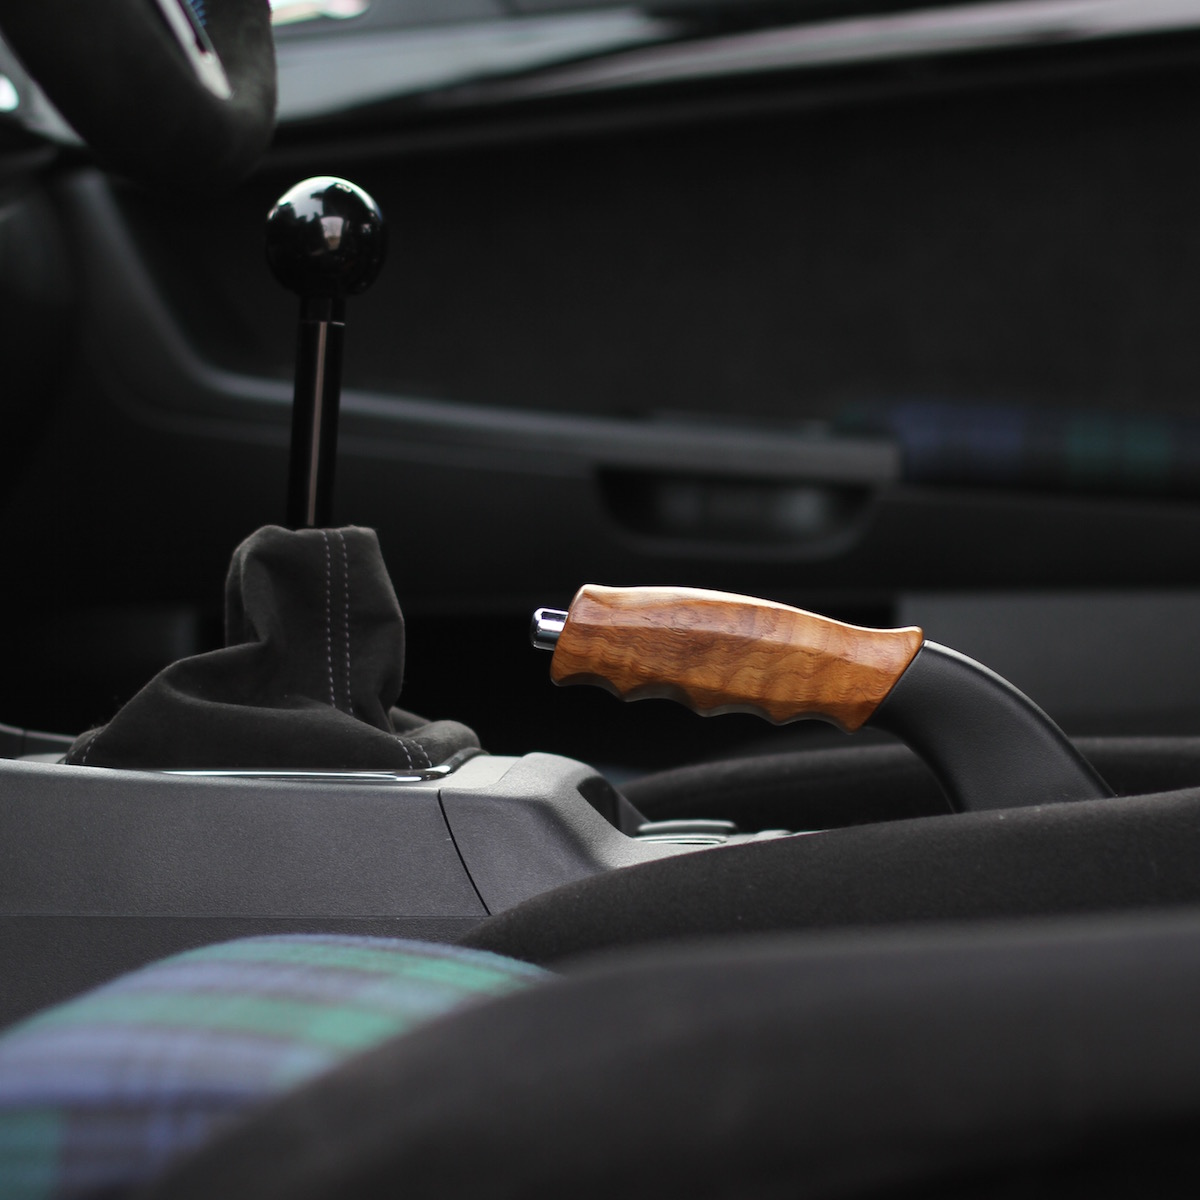 311RS Mitsubishi Evo EvoX wood wooden sculpture hand brake